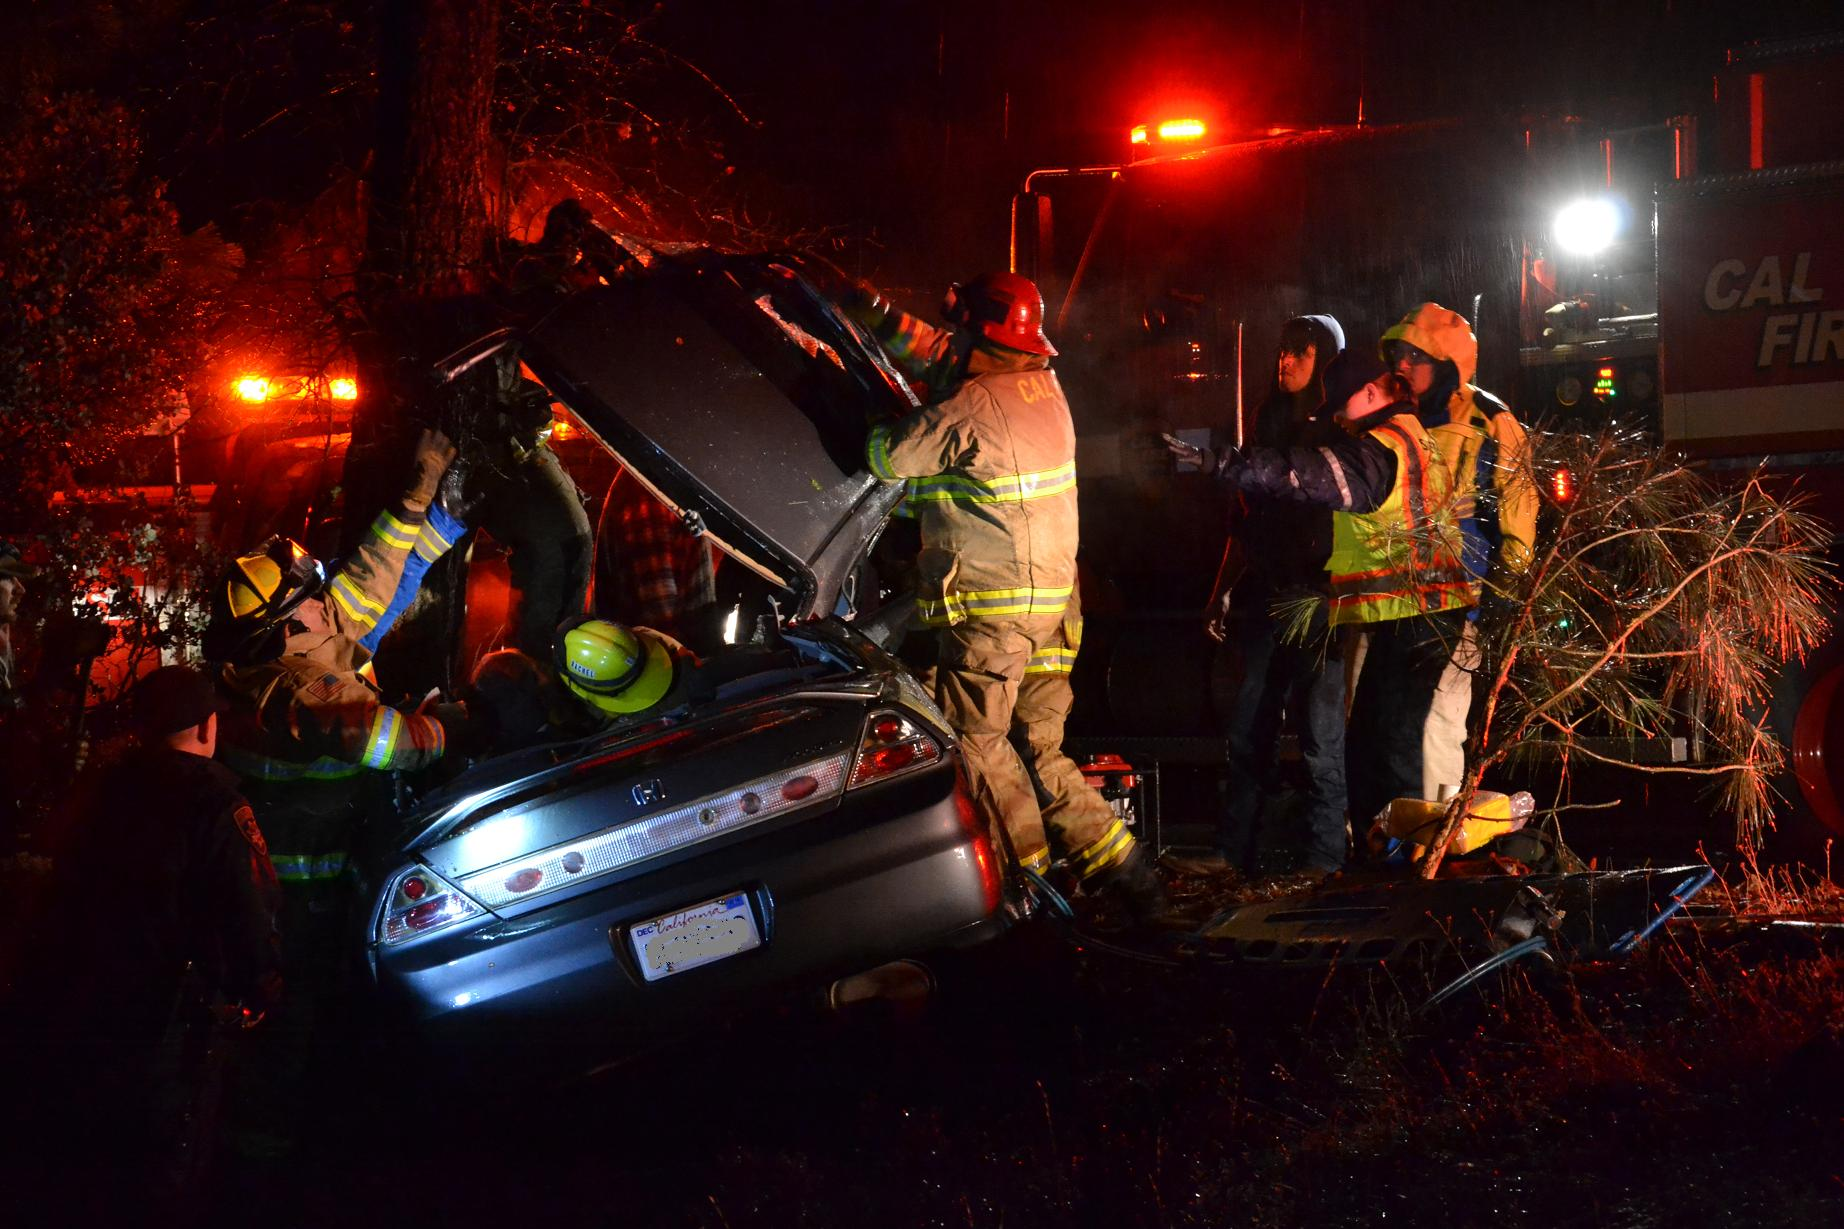 Firefighters cut the top off a Honda to free the driver - photo by Gina Clugston